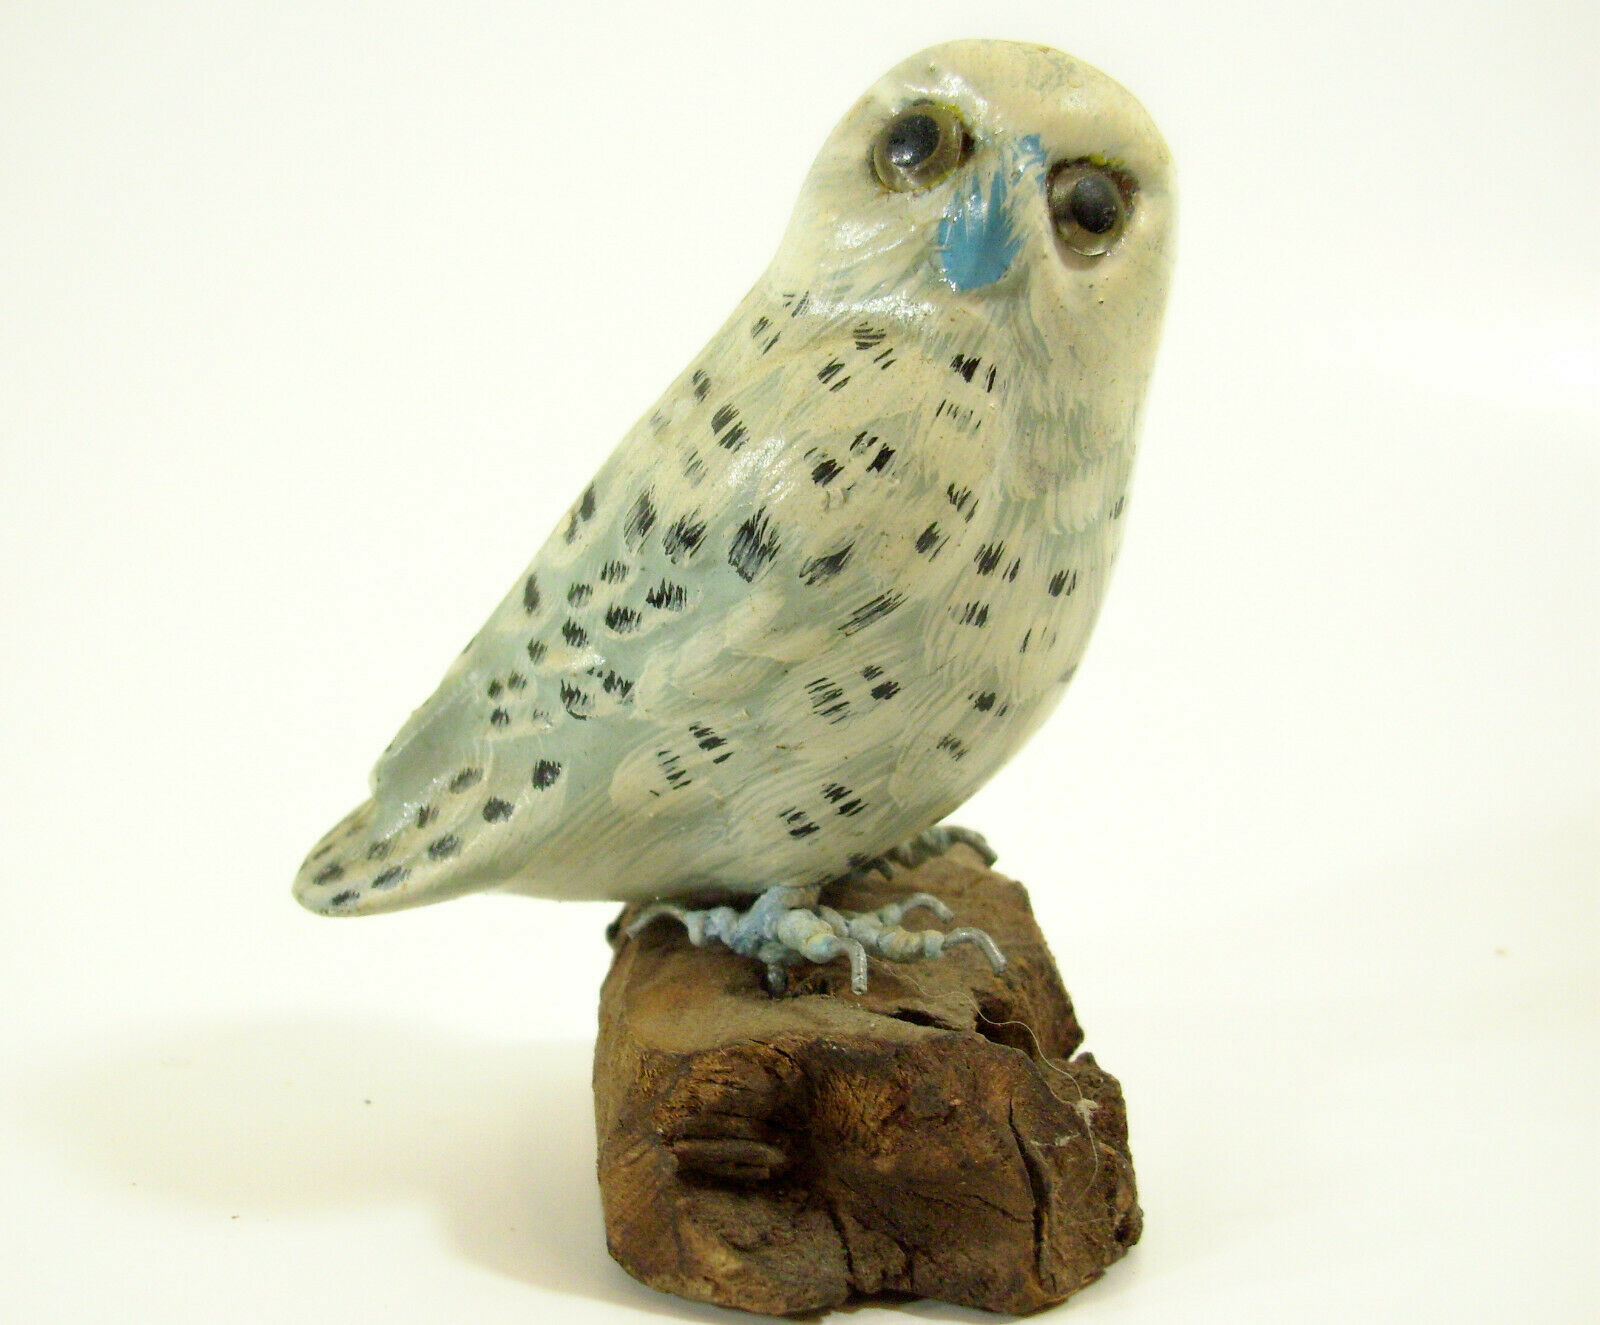 Primary image for Snowy Owl Hand Painted Figurine Figure Enesco White on Driftwood 1989 Vintage